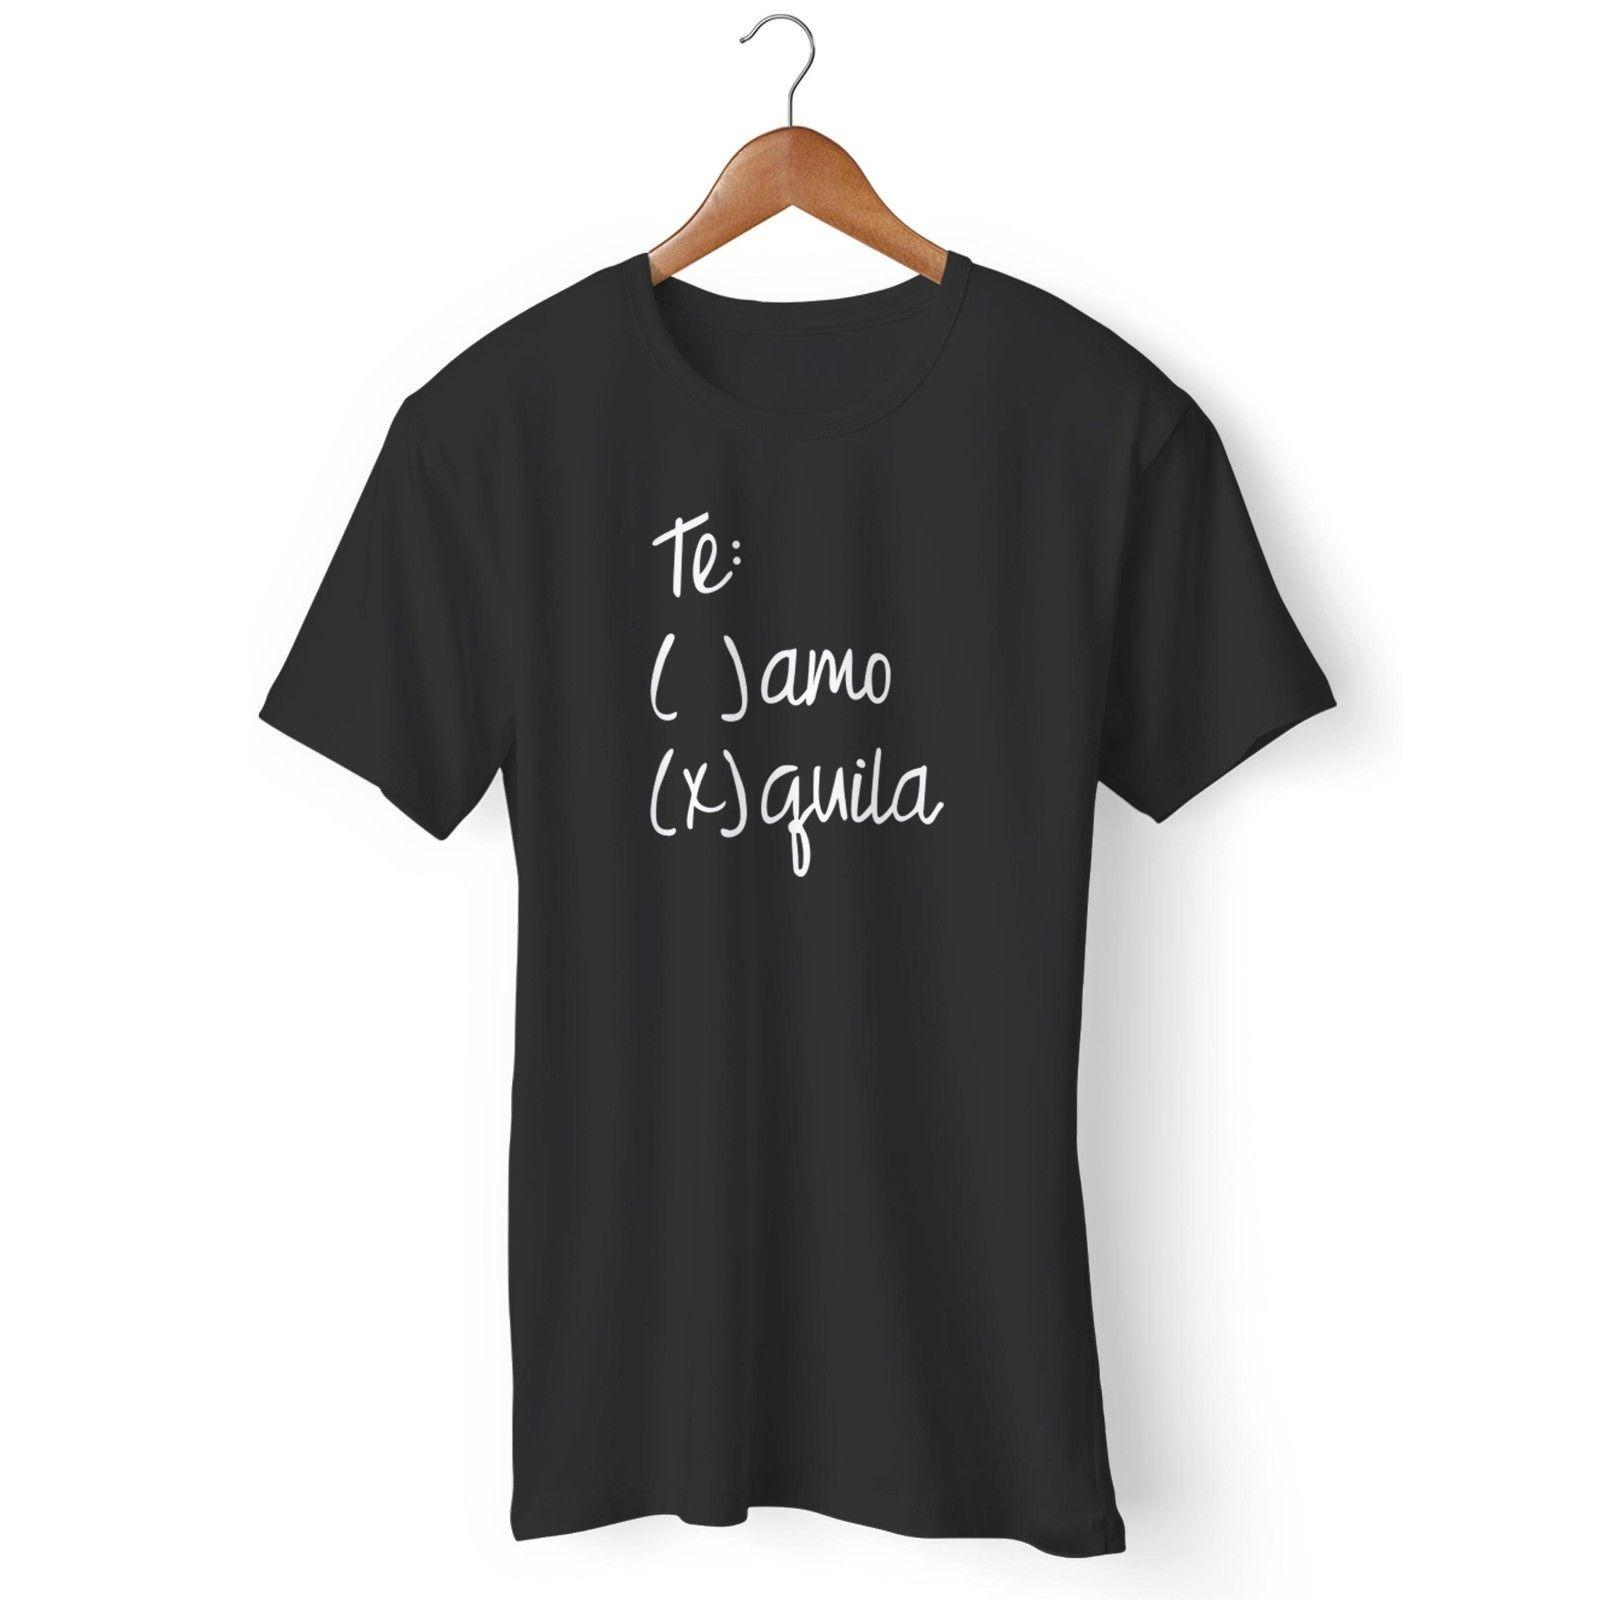 922d9617afec0d Te Amo Tequila Funny Tequila Man S   Woman S T Shirt High Quality The New  Short Sleeve Casual O Neck Fashion Casual Cotton Online T Shirt Shopping  Print On ...